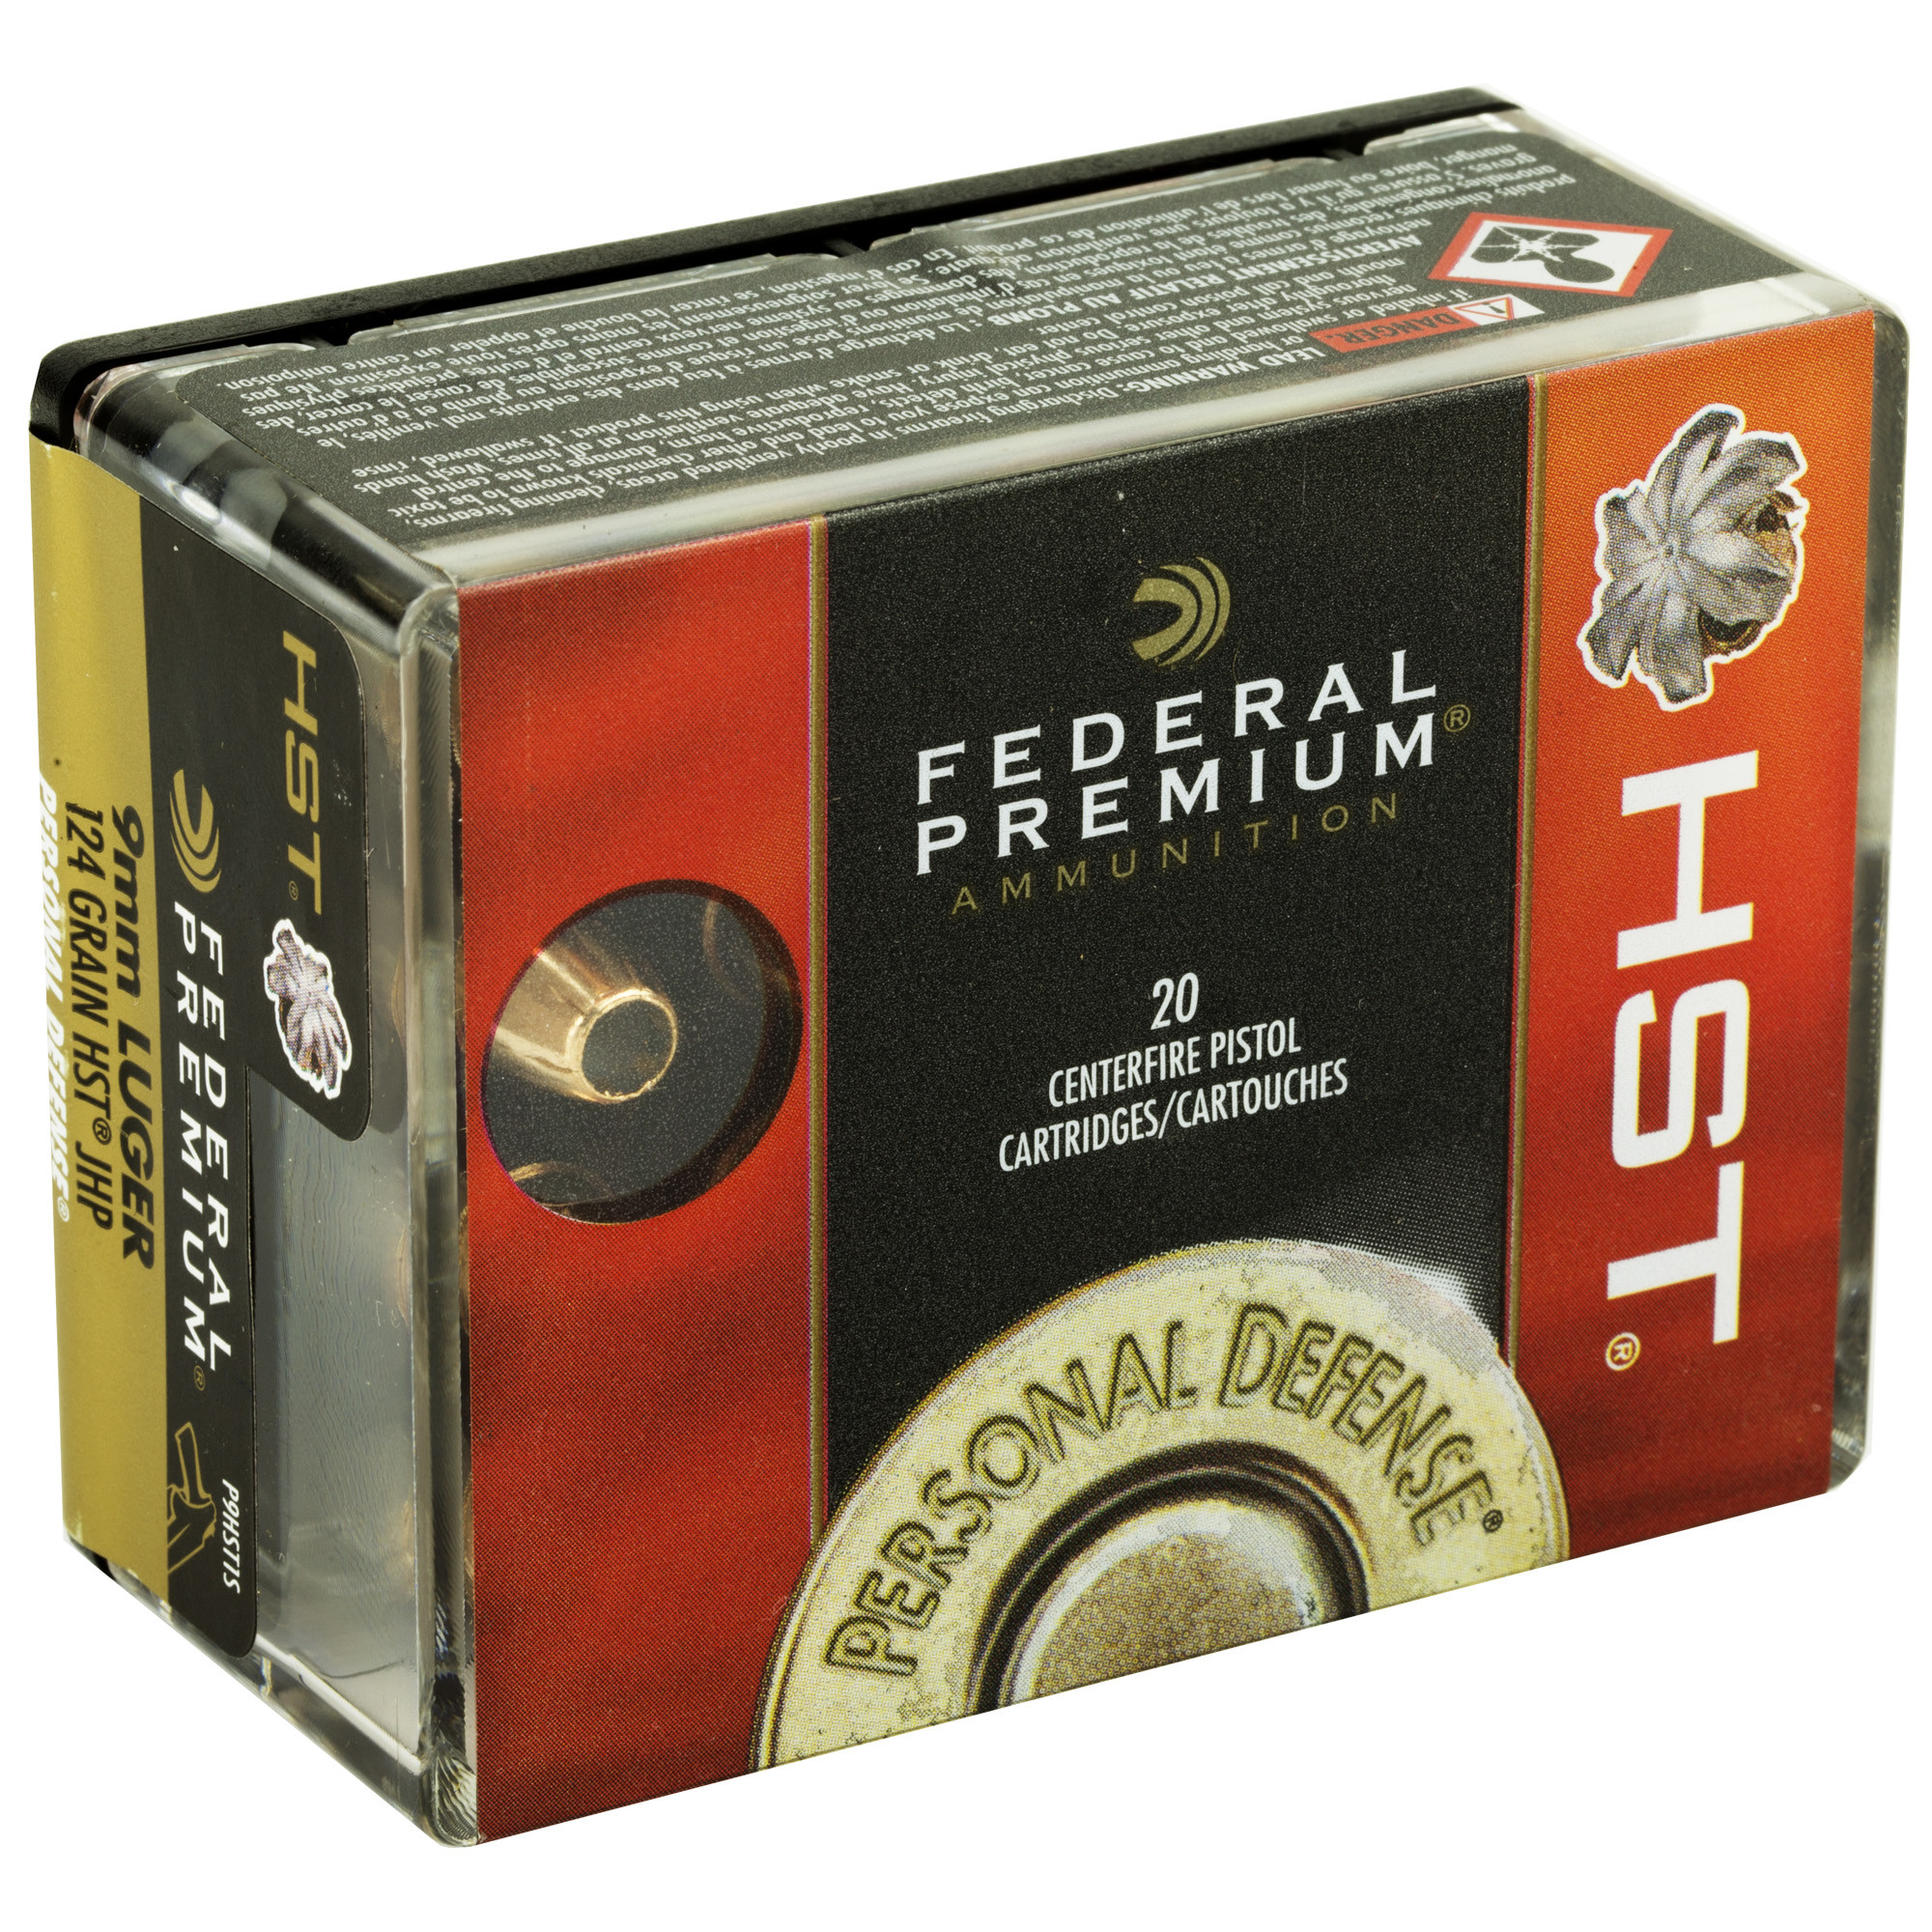 Federal Premium Personal Defense Ammunition 9mm Luger 124 Grain HST Jacketed Hollow Point Per 20